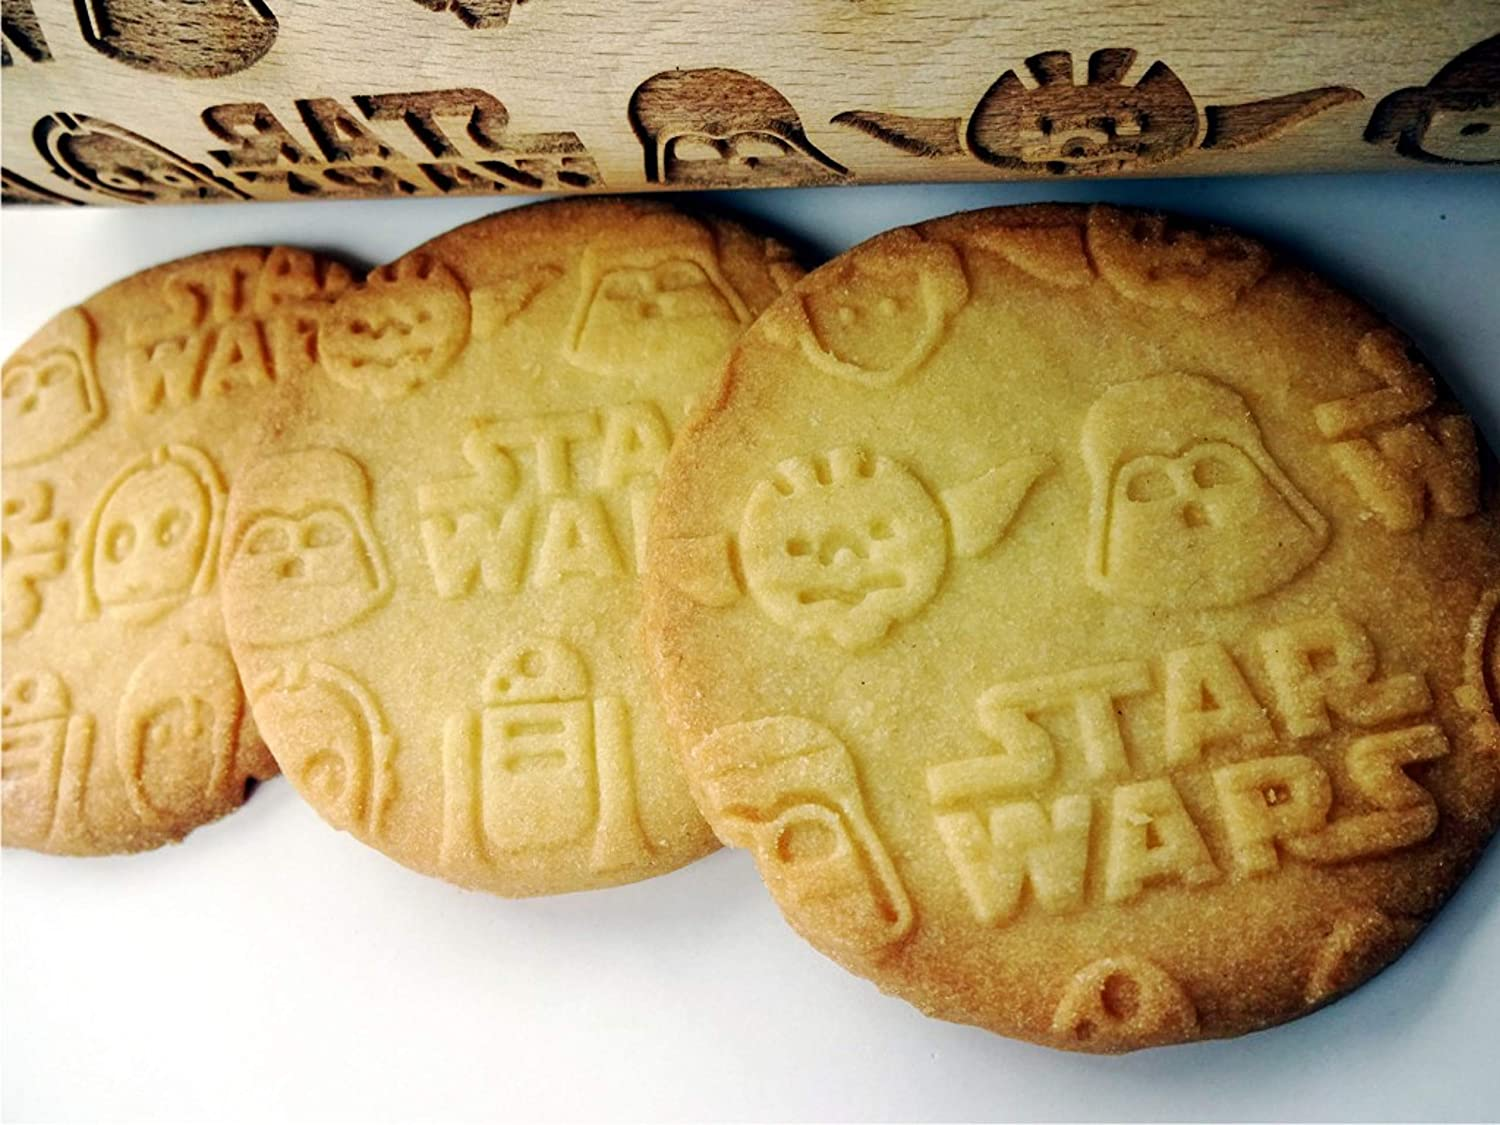 Biscuit Fondant Roller Star Wars Dough Engraved Roller Embossing Rolling pins German beech-Wood Kitchen Tool Star Wars Rolling Pin